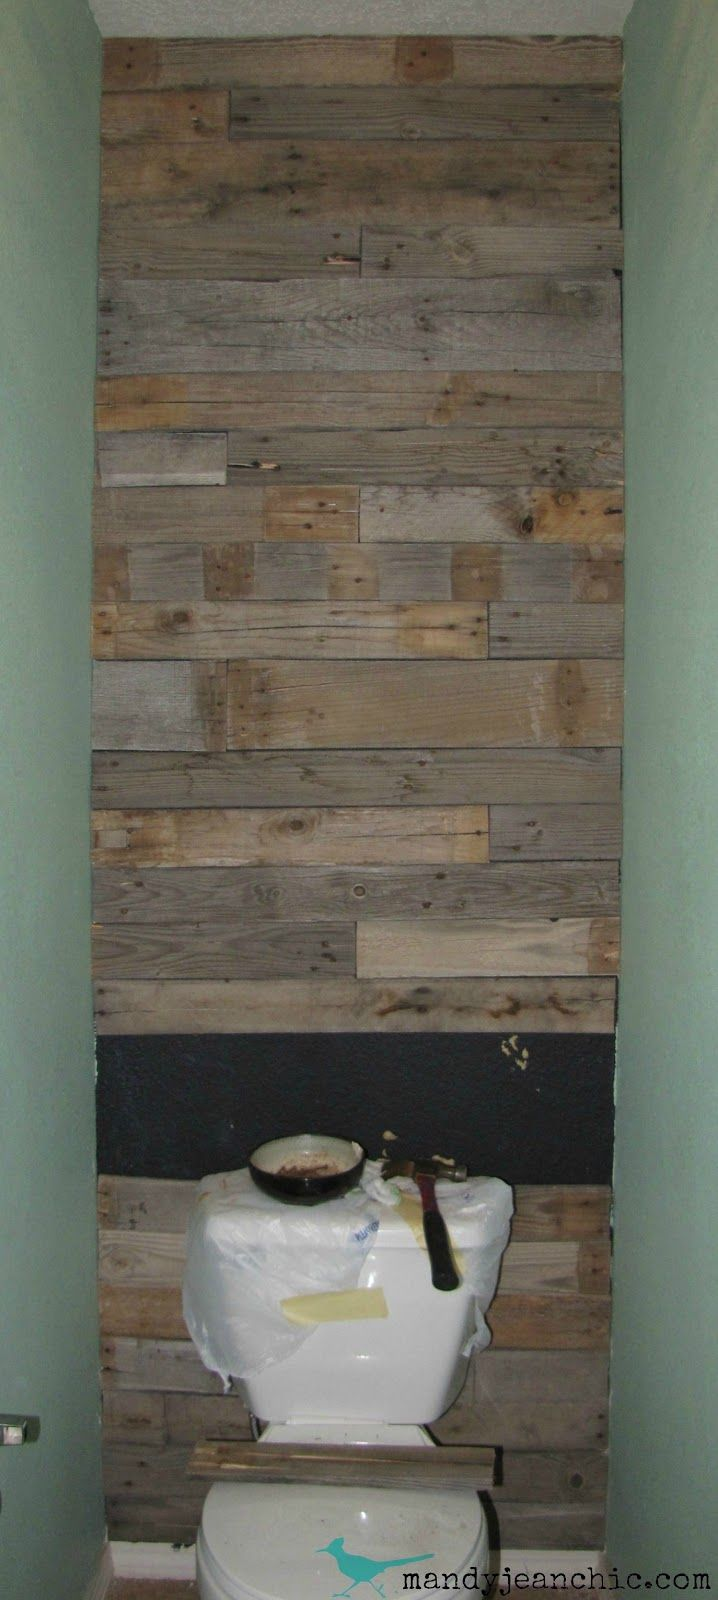 Mandy Jean Chic Diy Pallet Wall For The Free Toilet Room